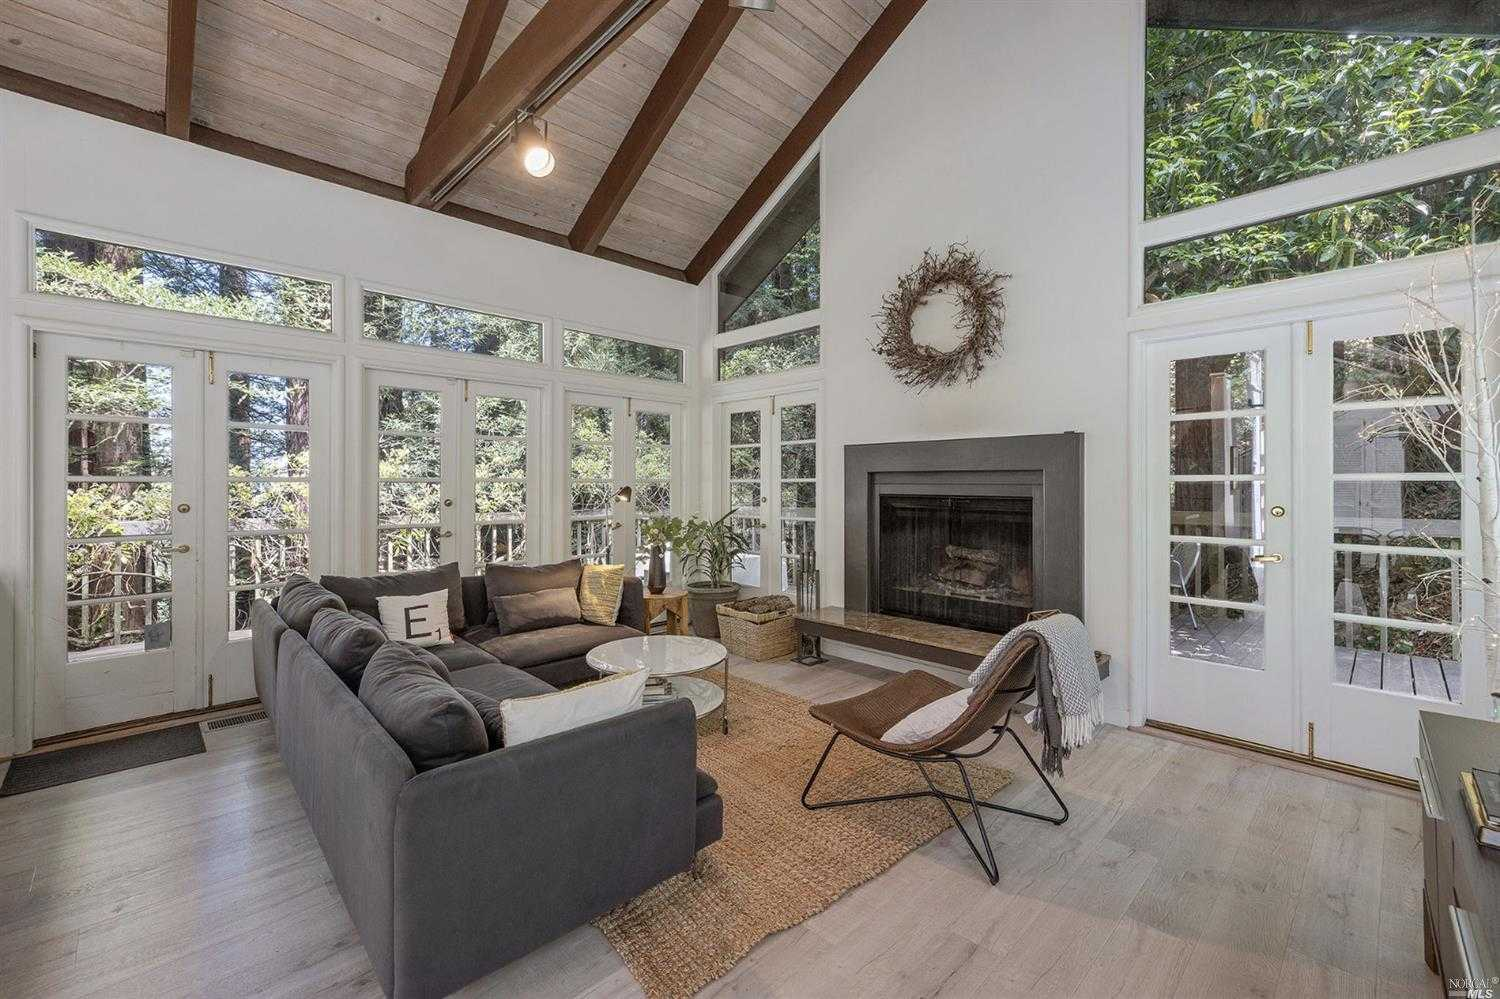 $1,495,000 - 1Br/1Ba -  for Sale in Mill Valley